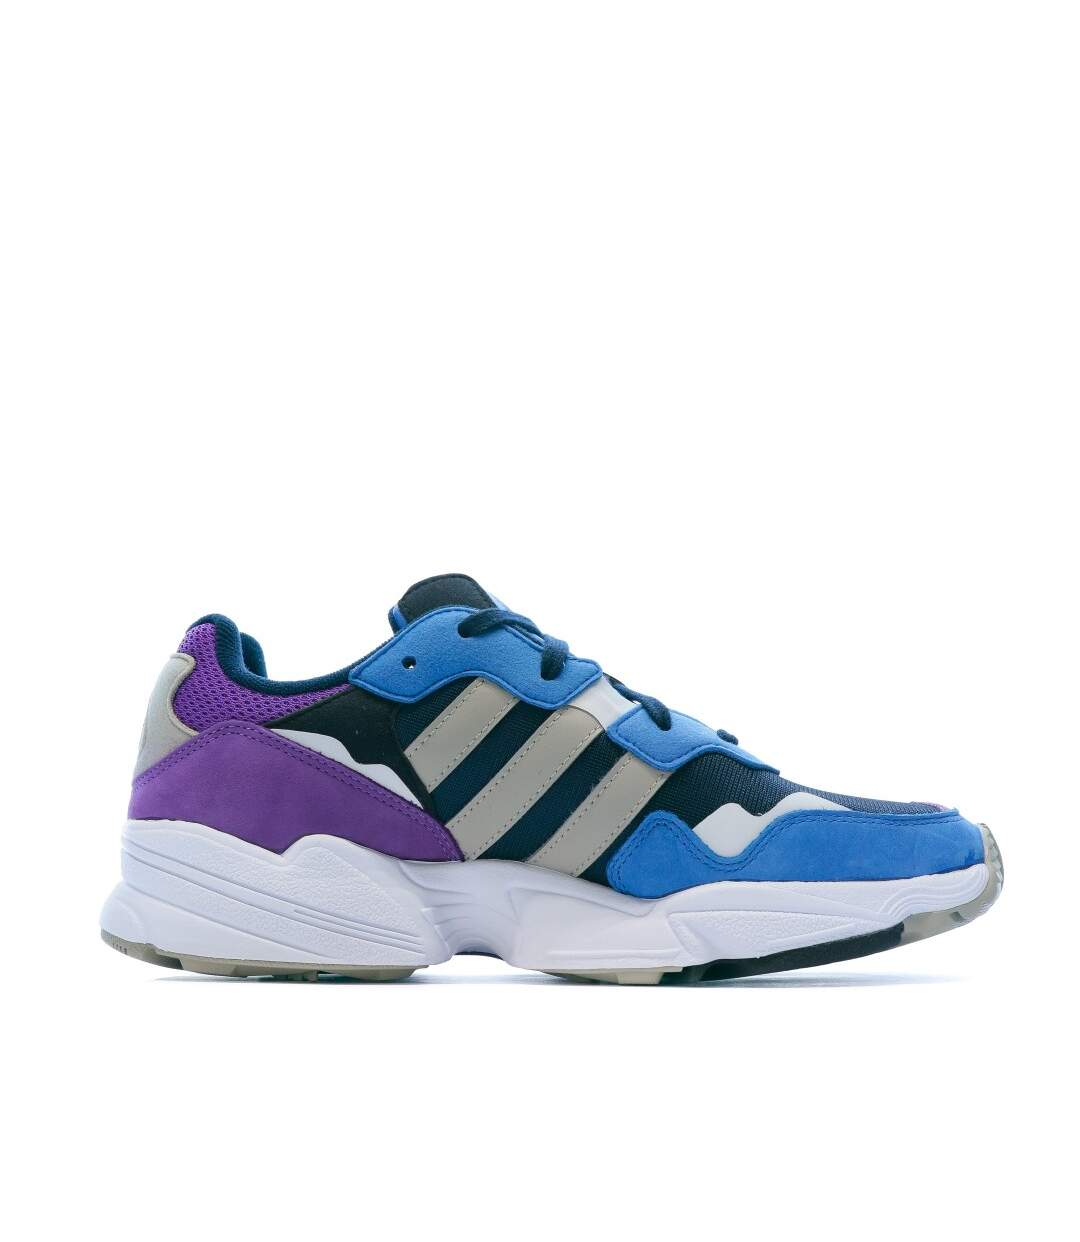 Grande Vente Yung-96 Baskets bleues homme Adidas dsf.d455nksdKLFHG